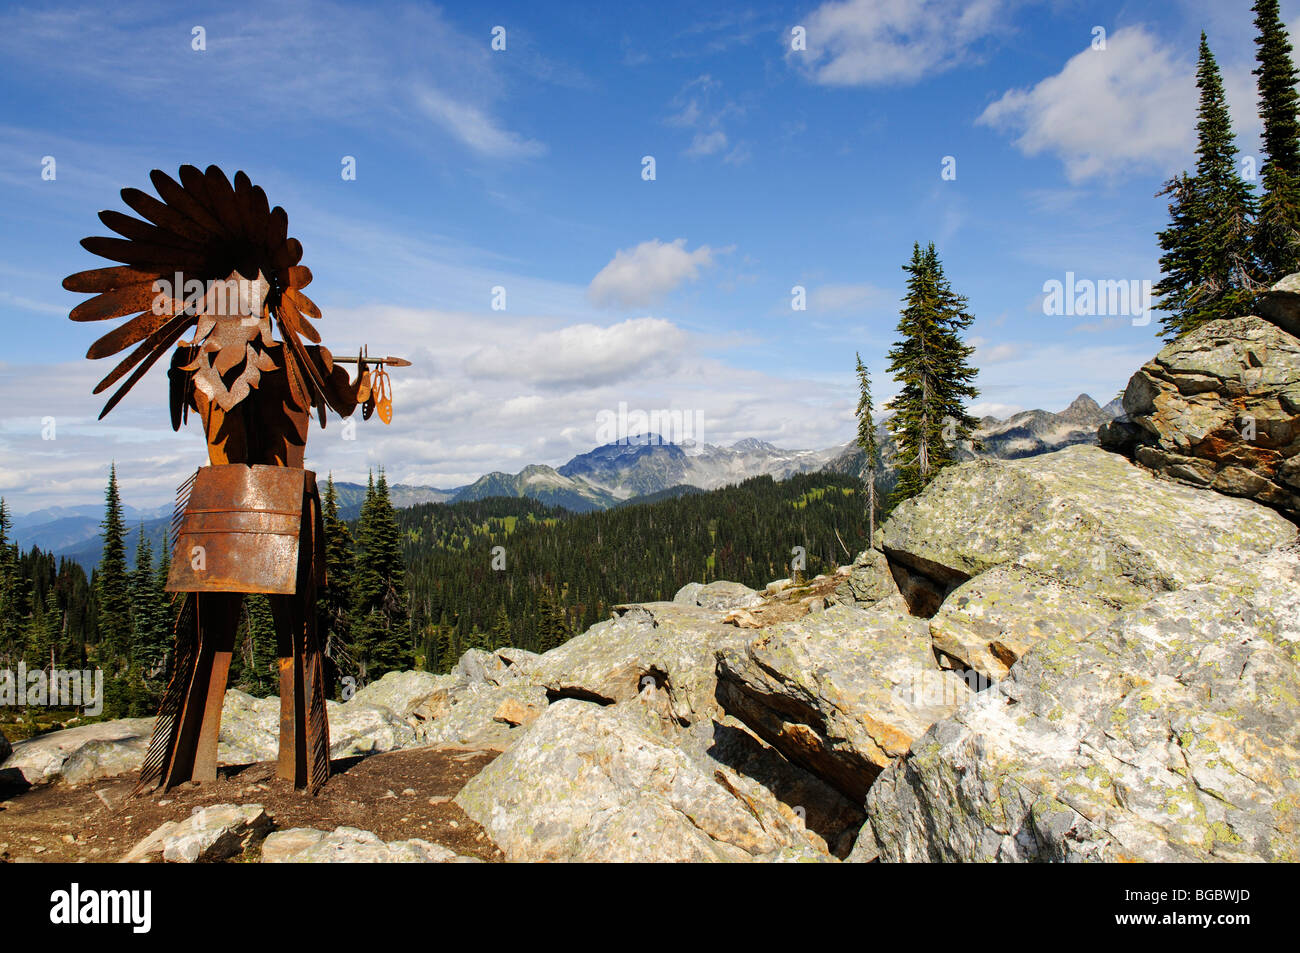 Native American iron chief, Mt. Revelstoke, Meadows in the Sky, Revelstoke National Park, British Columbia, Canada - Stock Image